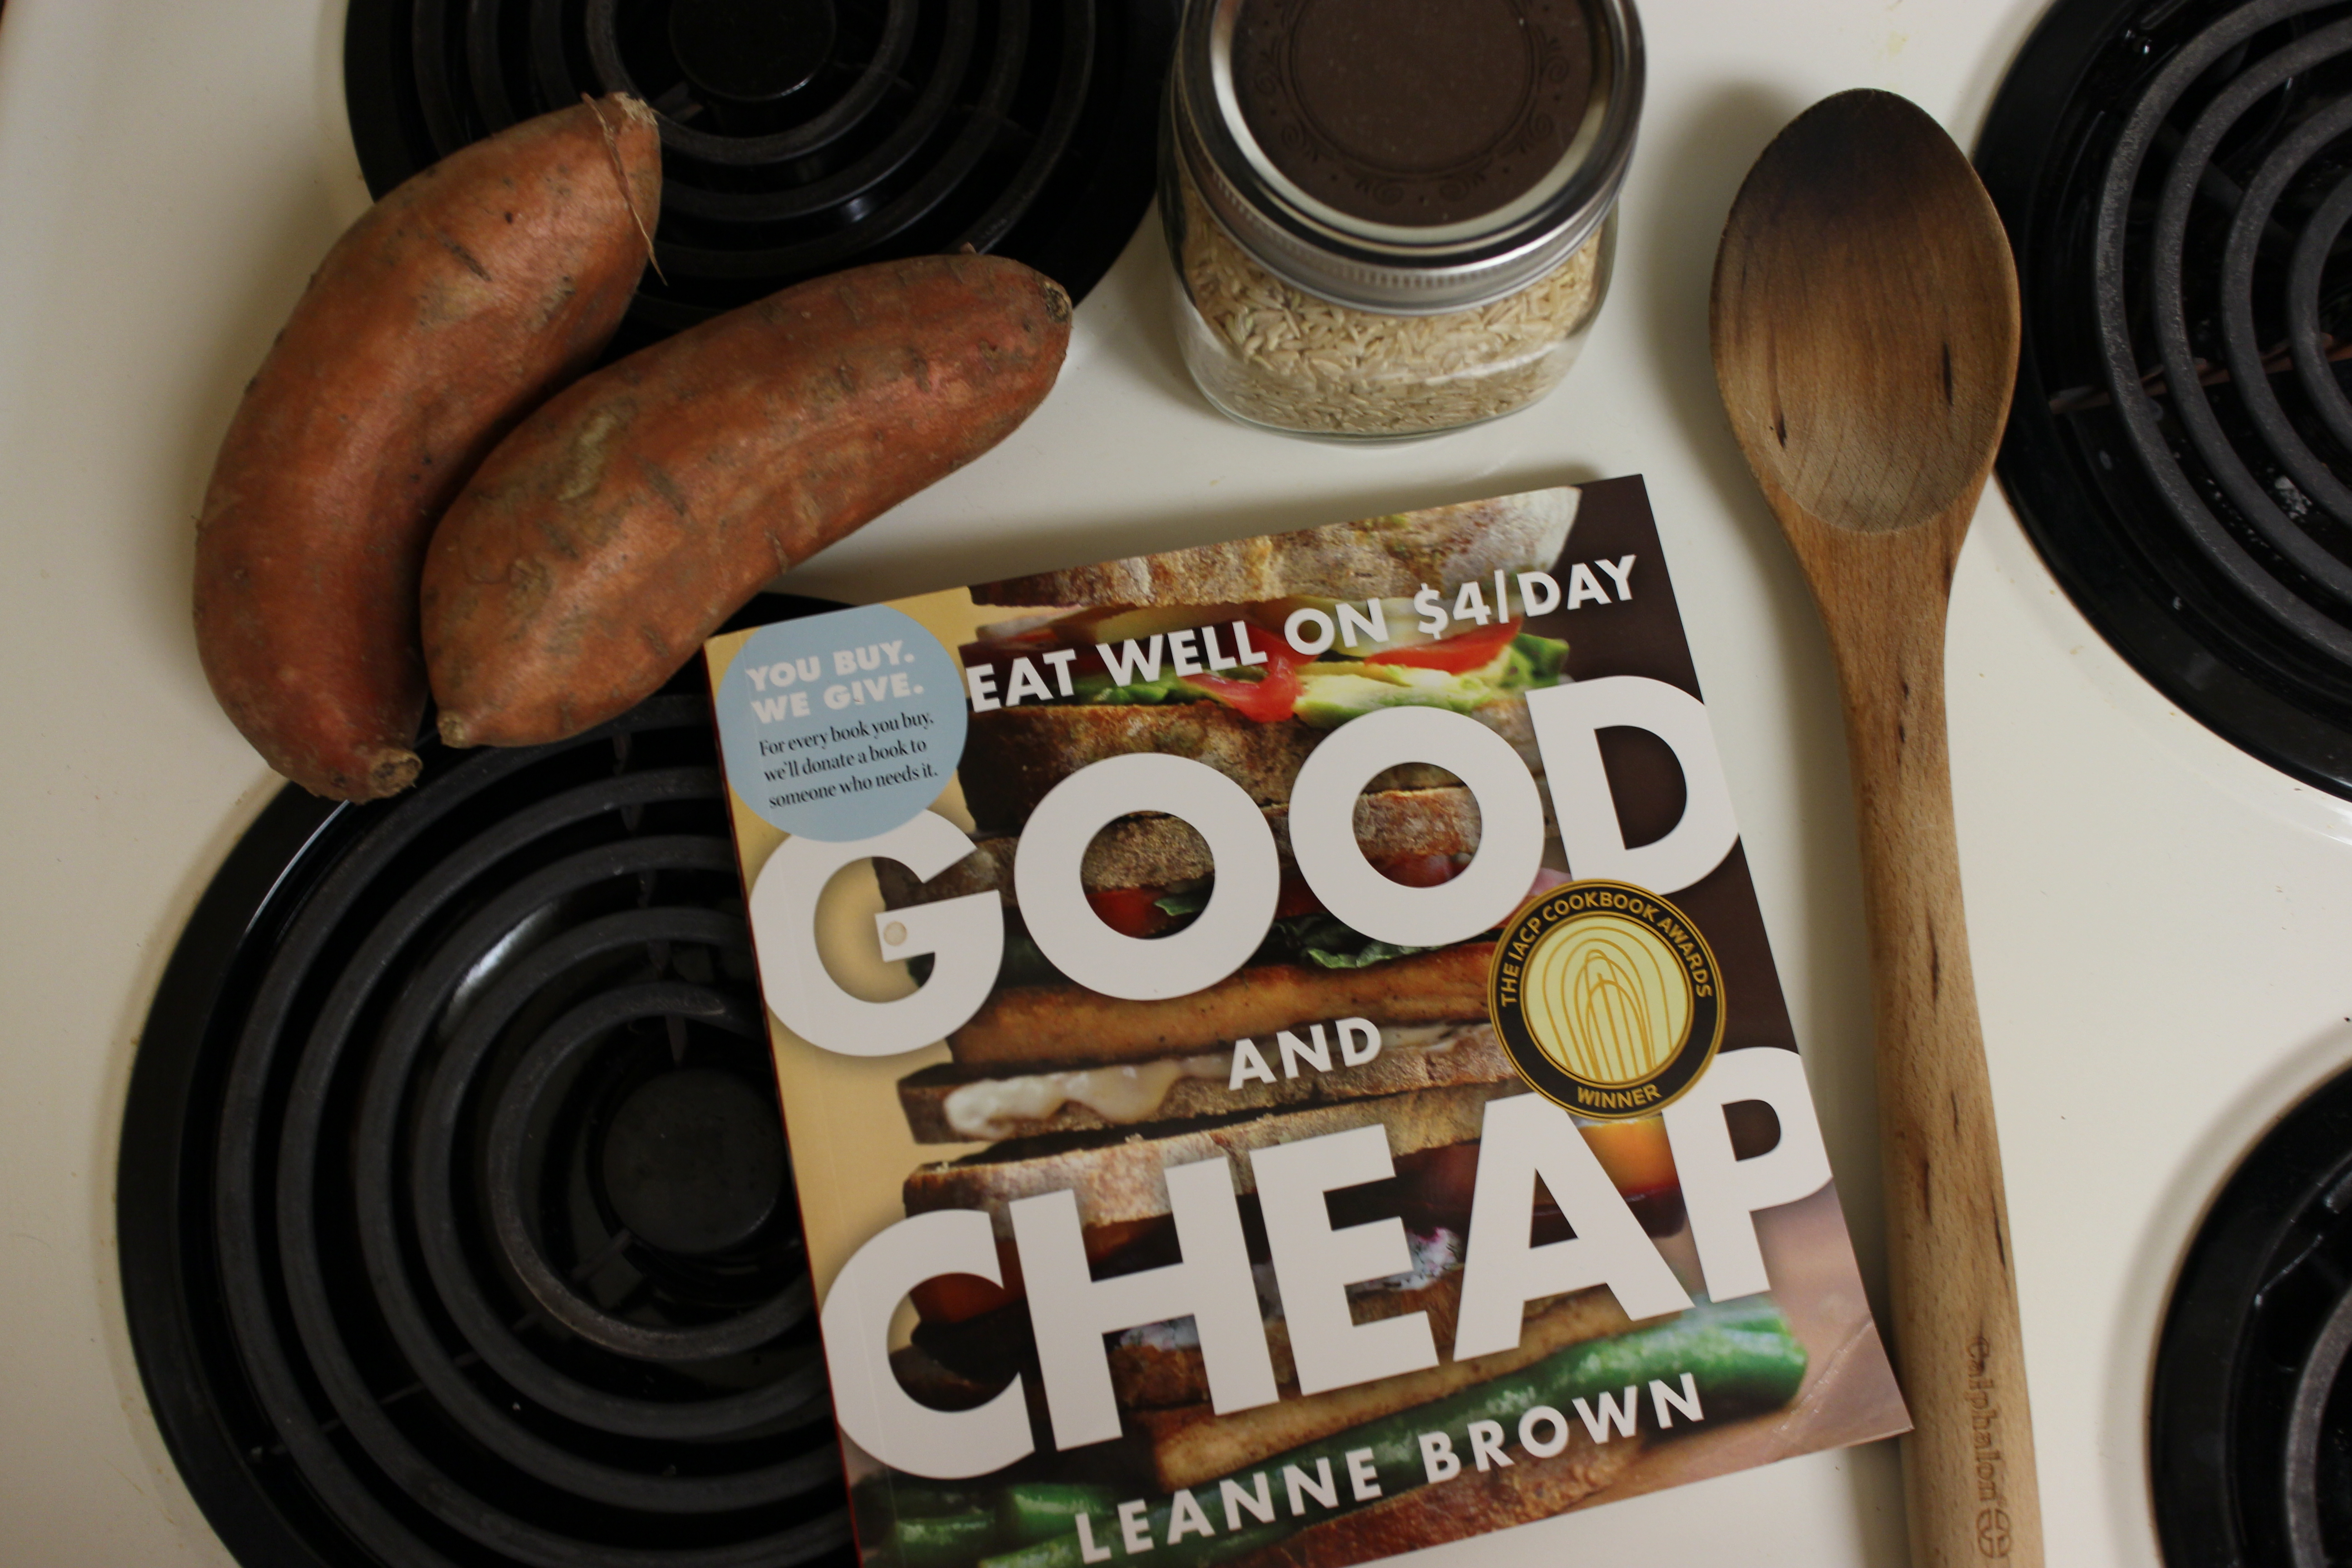 Food stamp budget finding delight good and cheap the kickstarter funded pdf which showcases how to eat well on any budget is now available in book form forumfinder Gallery